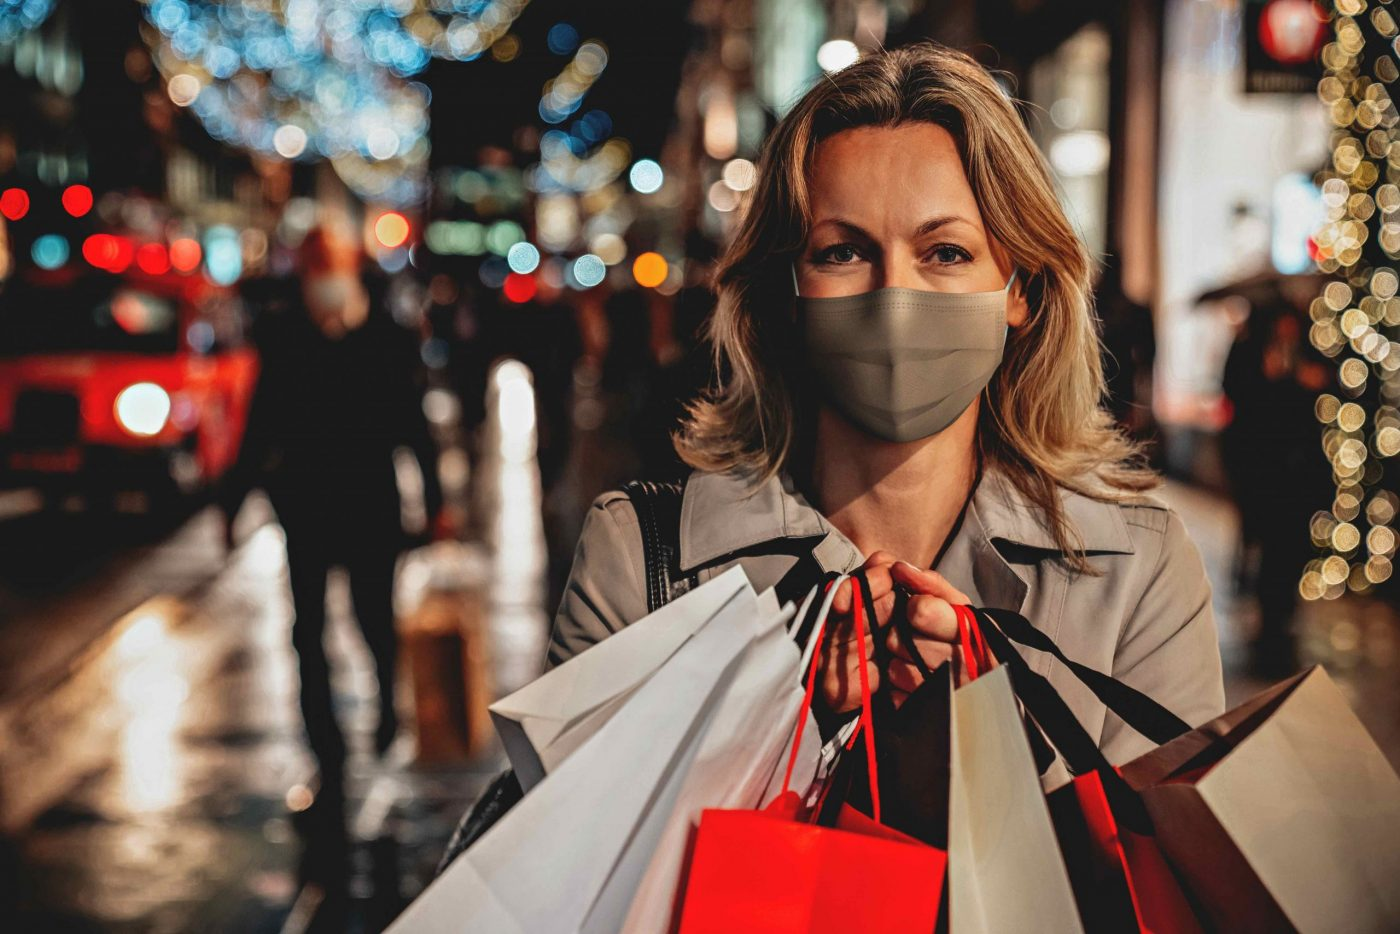 Portrait of a woman wearing a facemask while Christmas shopping and holding bags – COVID-19 pandemic lifestyle concepts